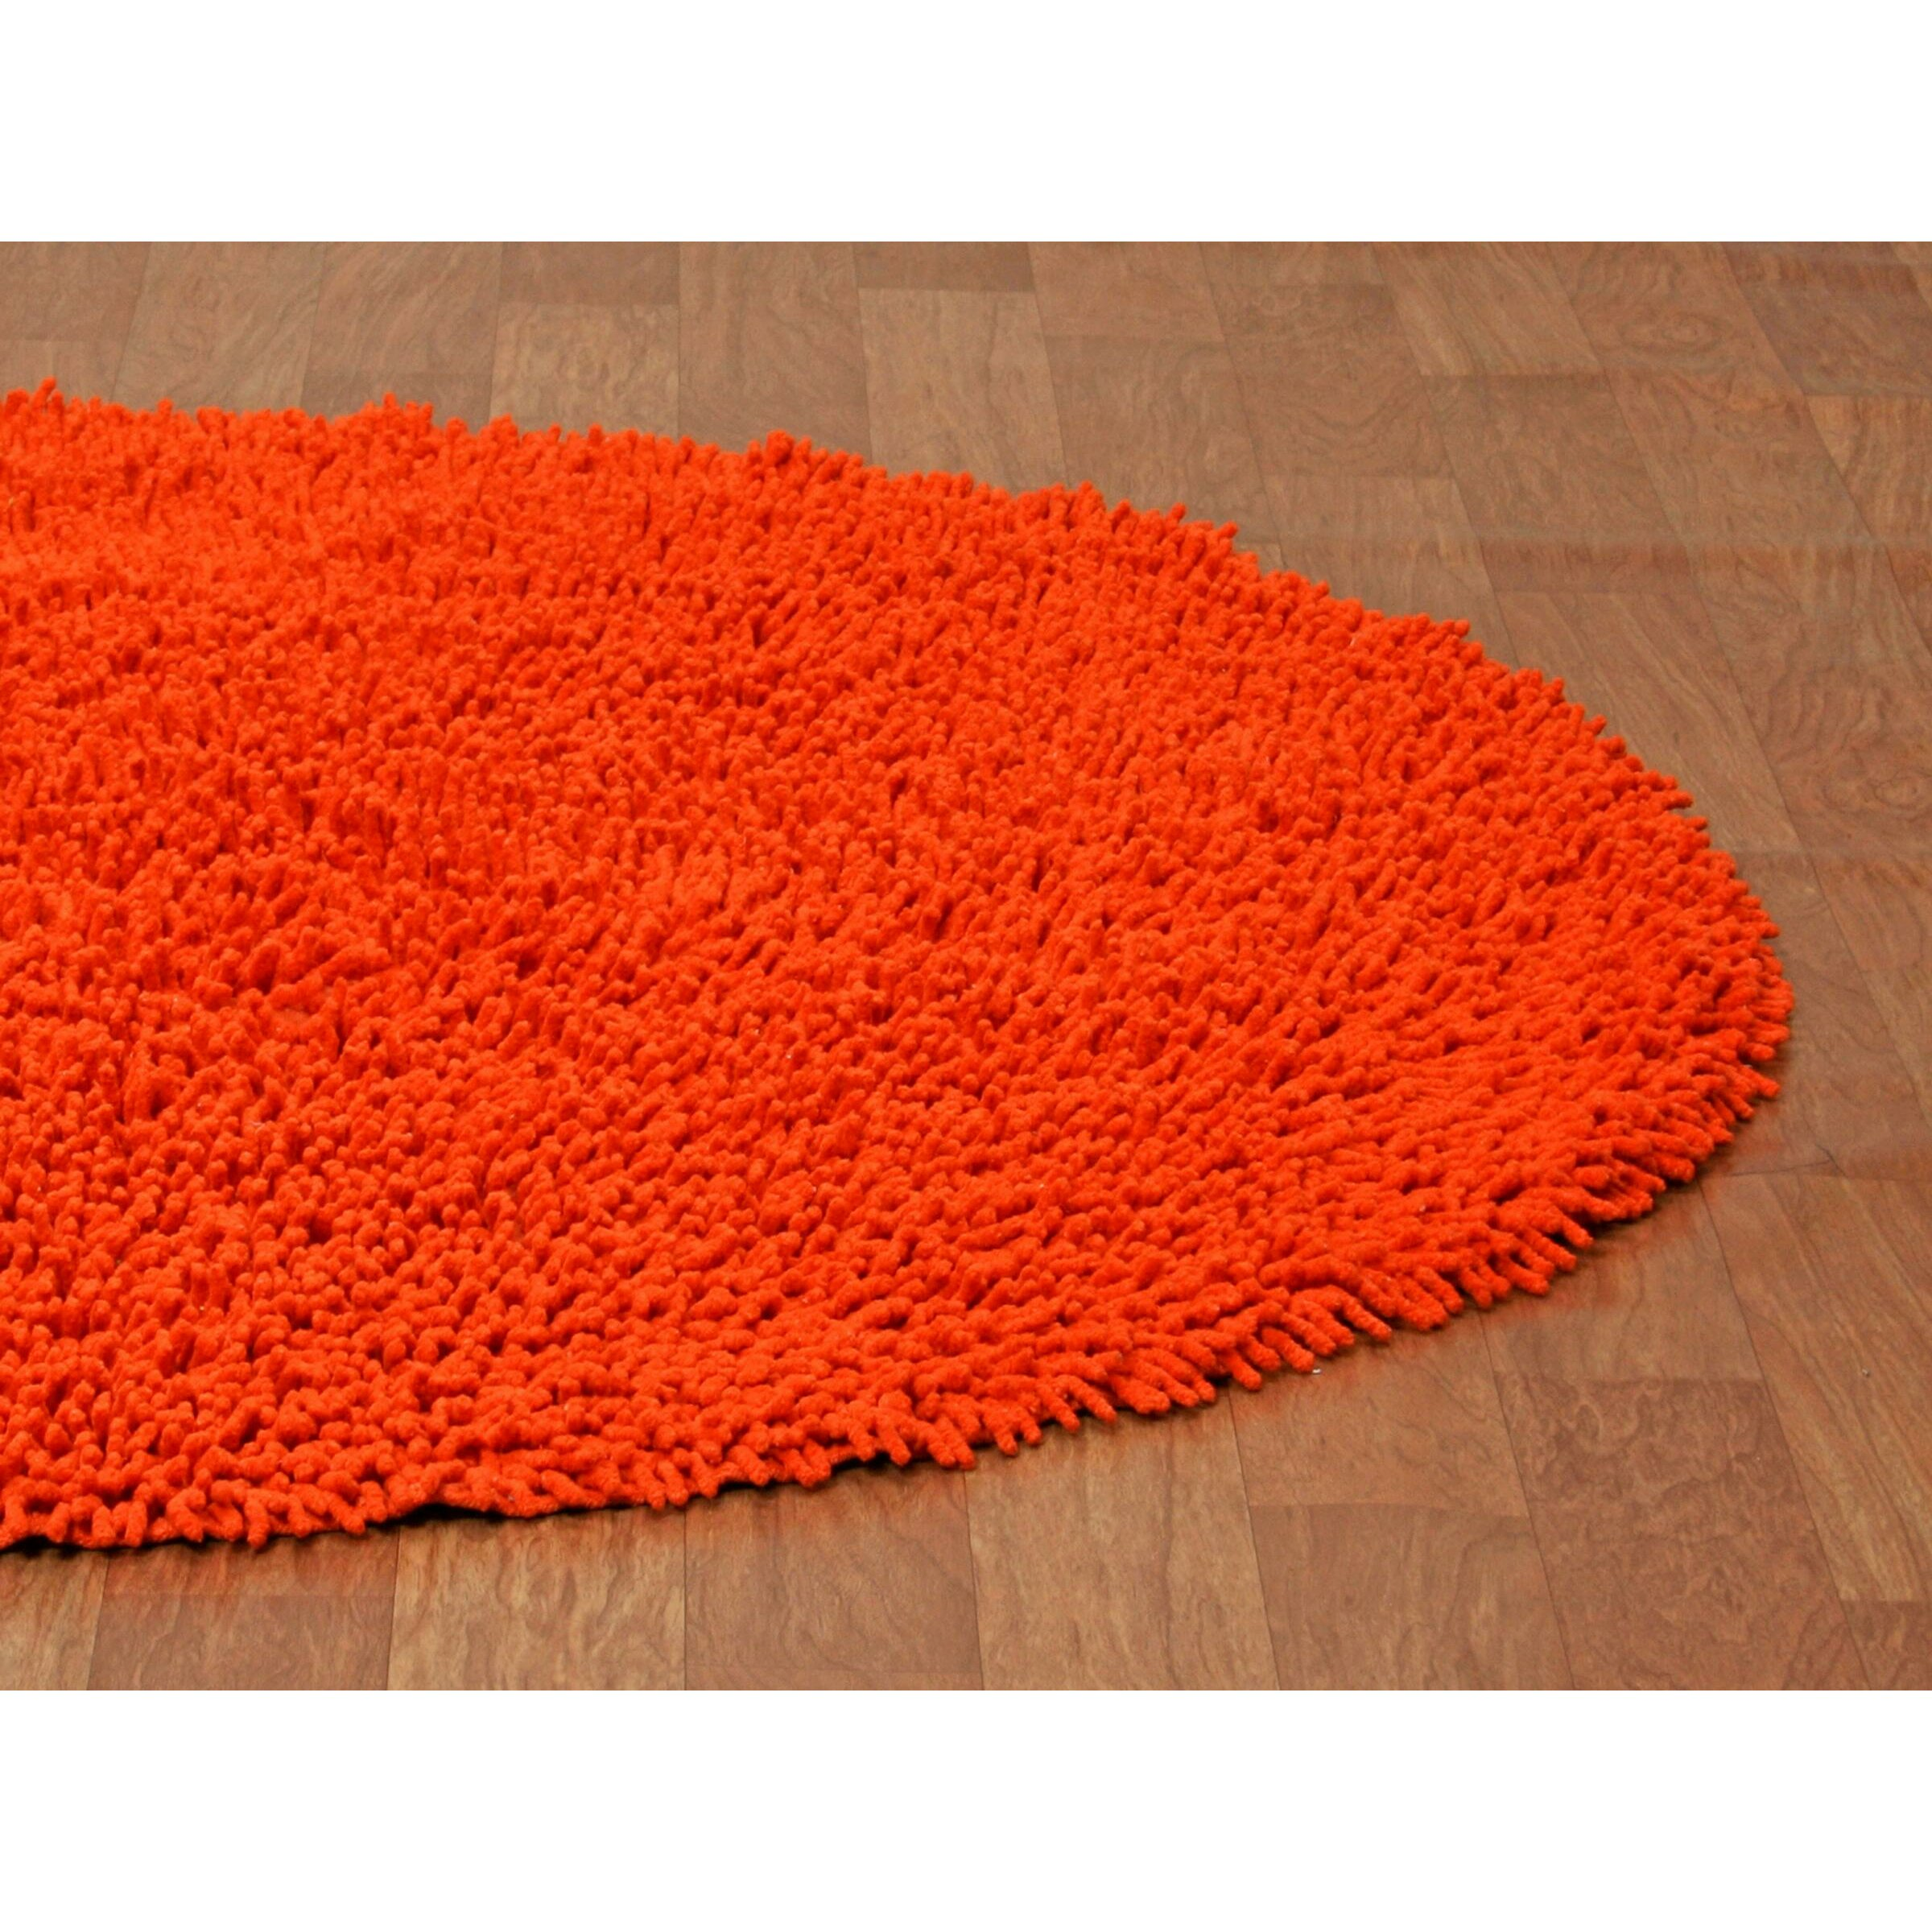 St Croix Shagadelic Orange Kids Area Rug Reviews Wayfair